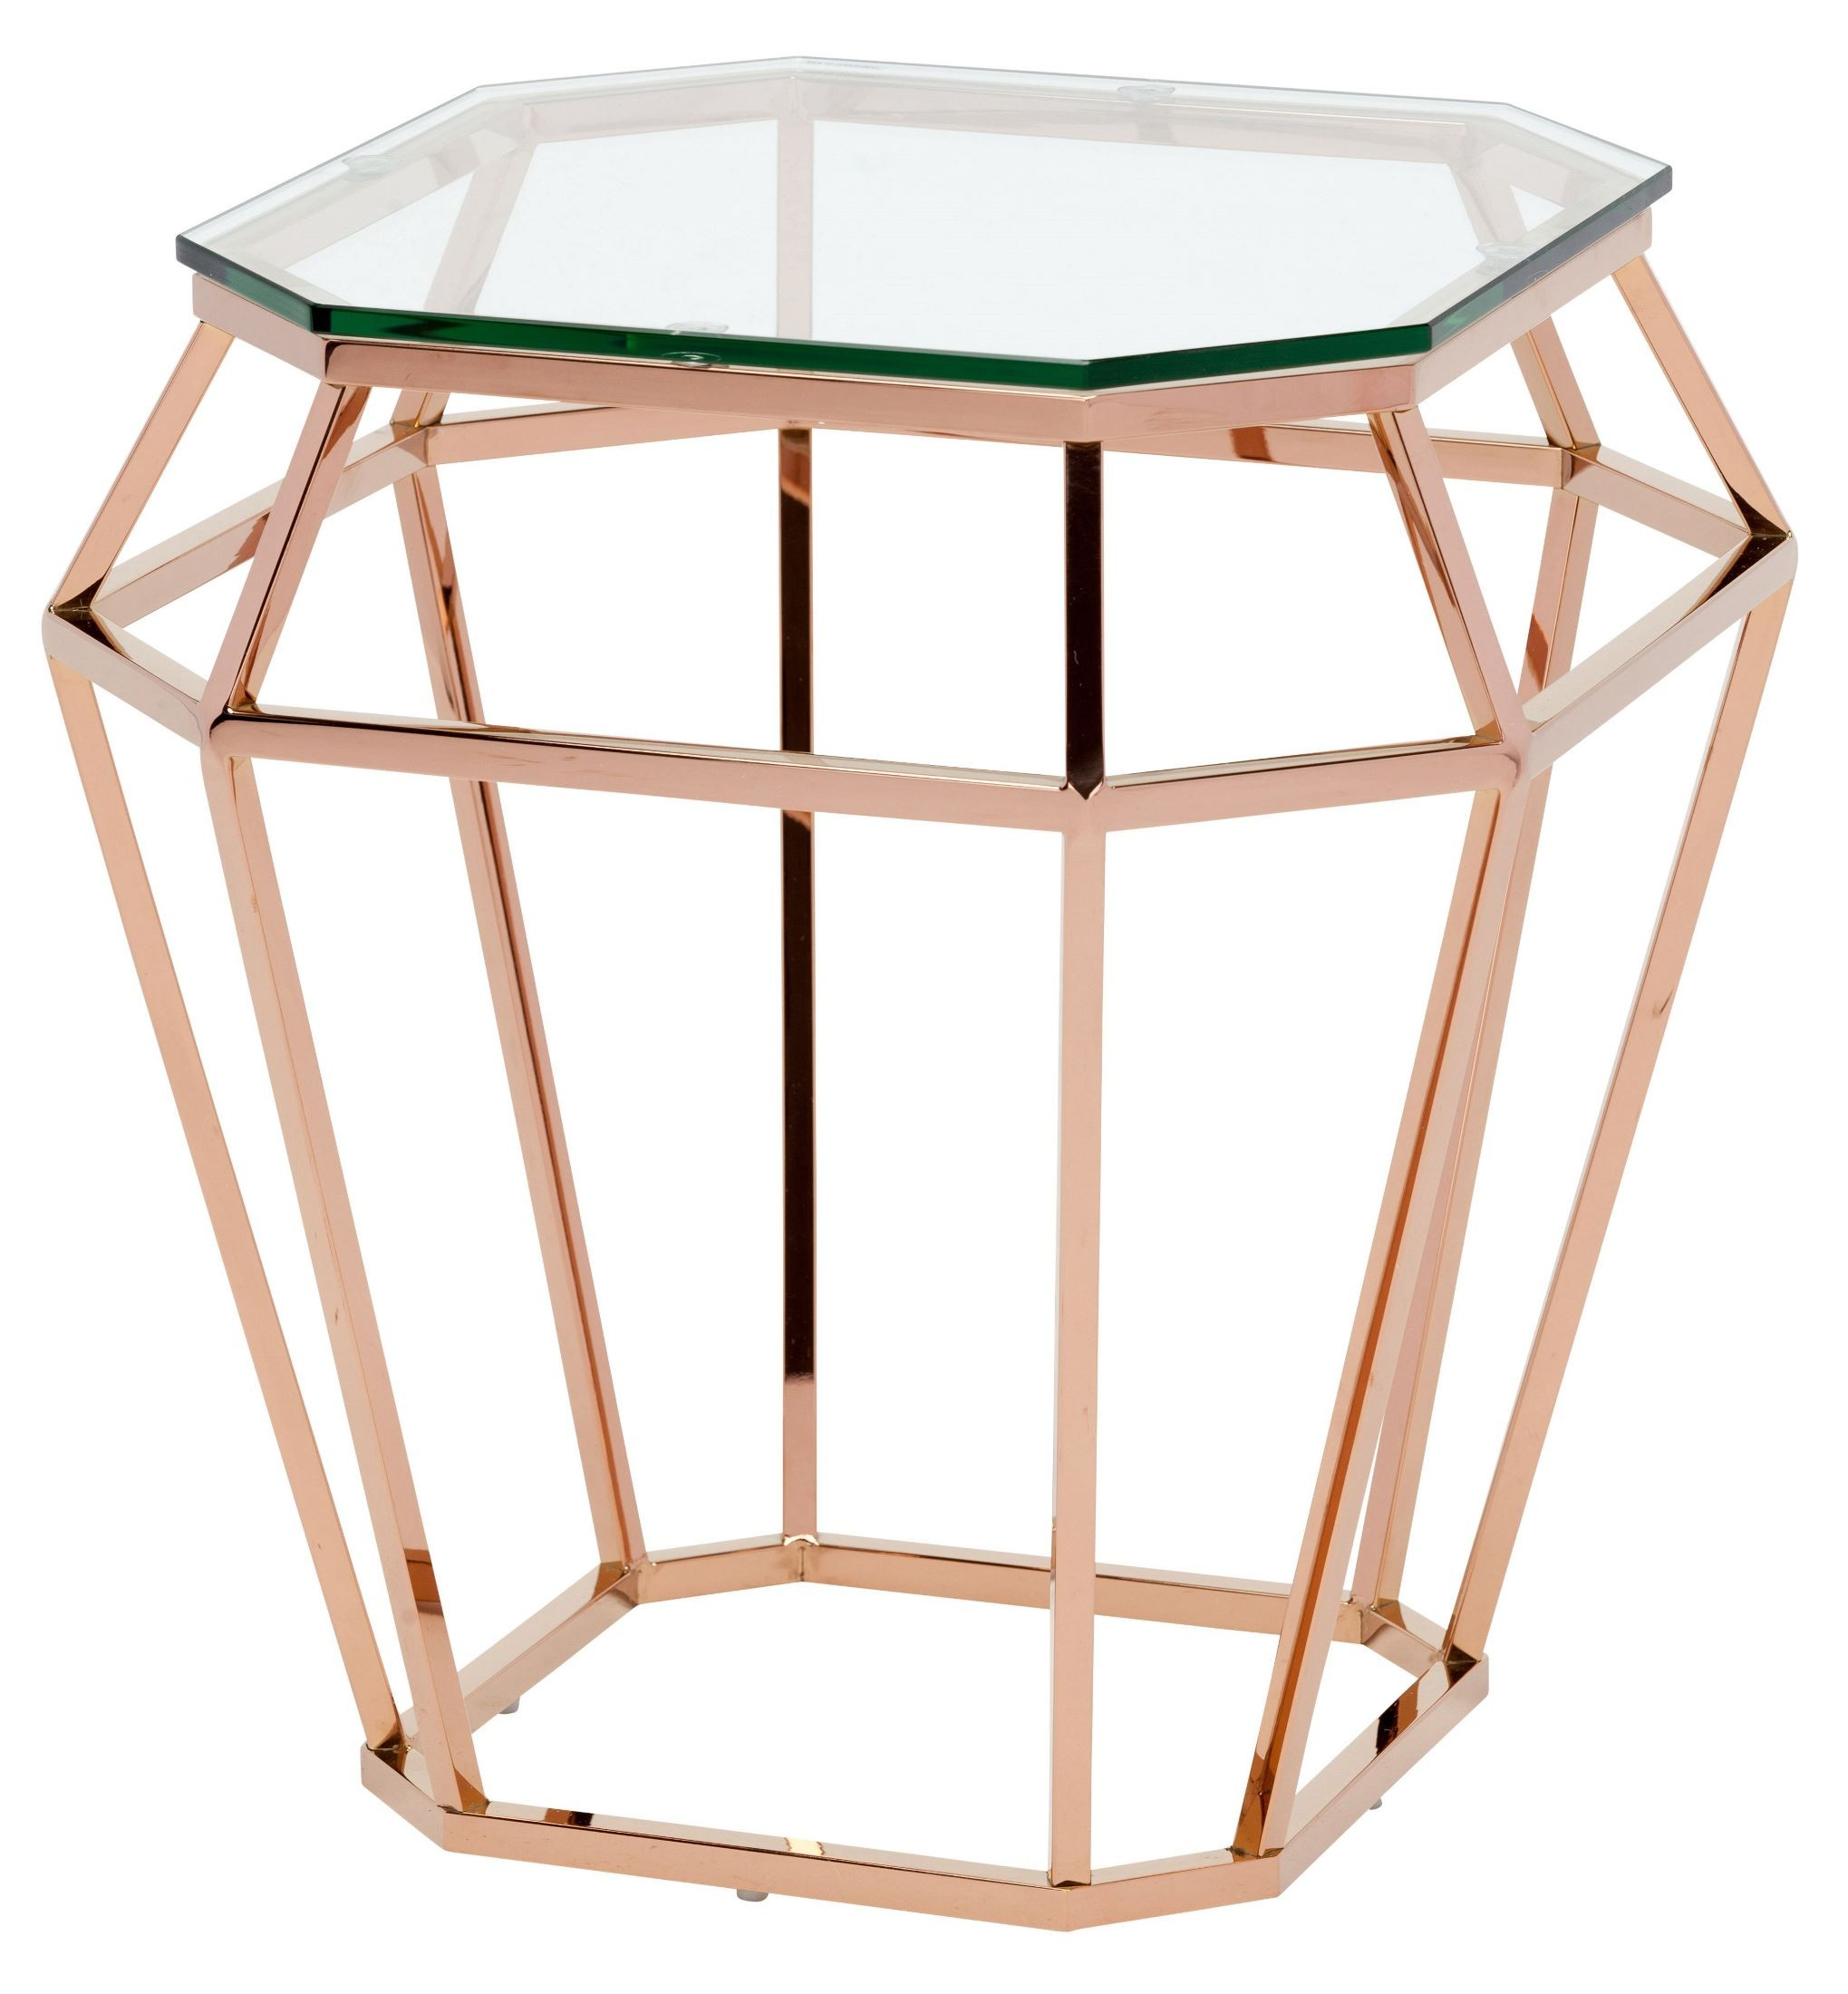 Rose Gold Mirrored Coffee Table: Diamond Clear Glass Side Table, HGSX179, Nuevo